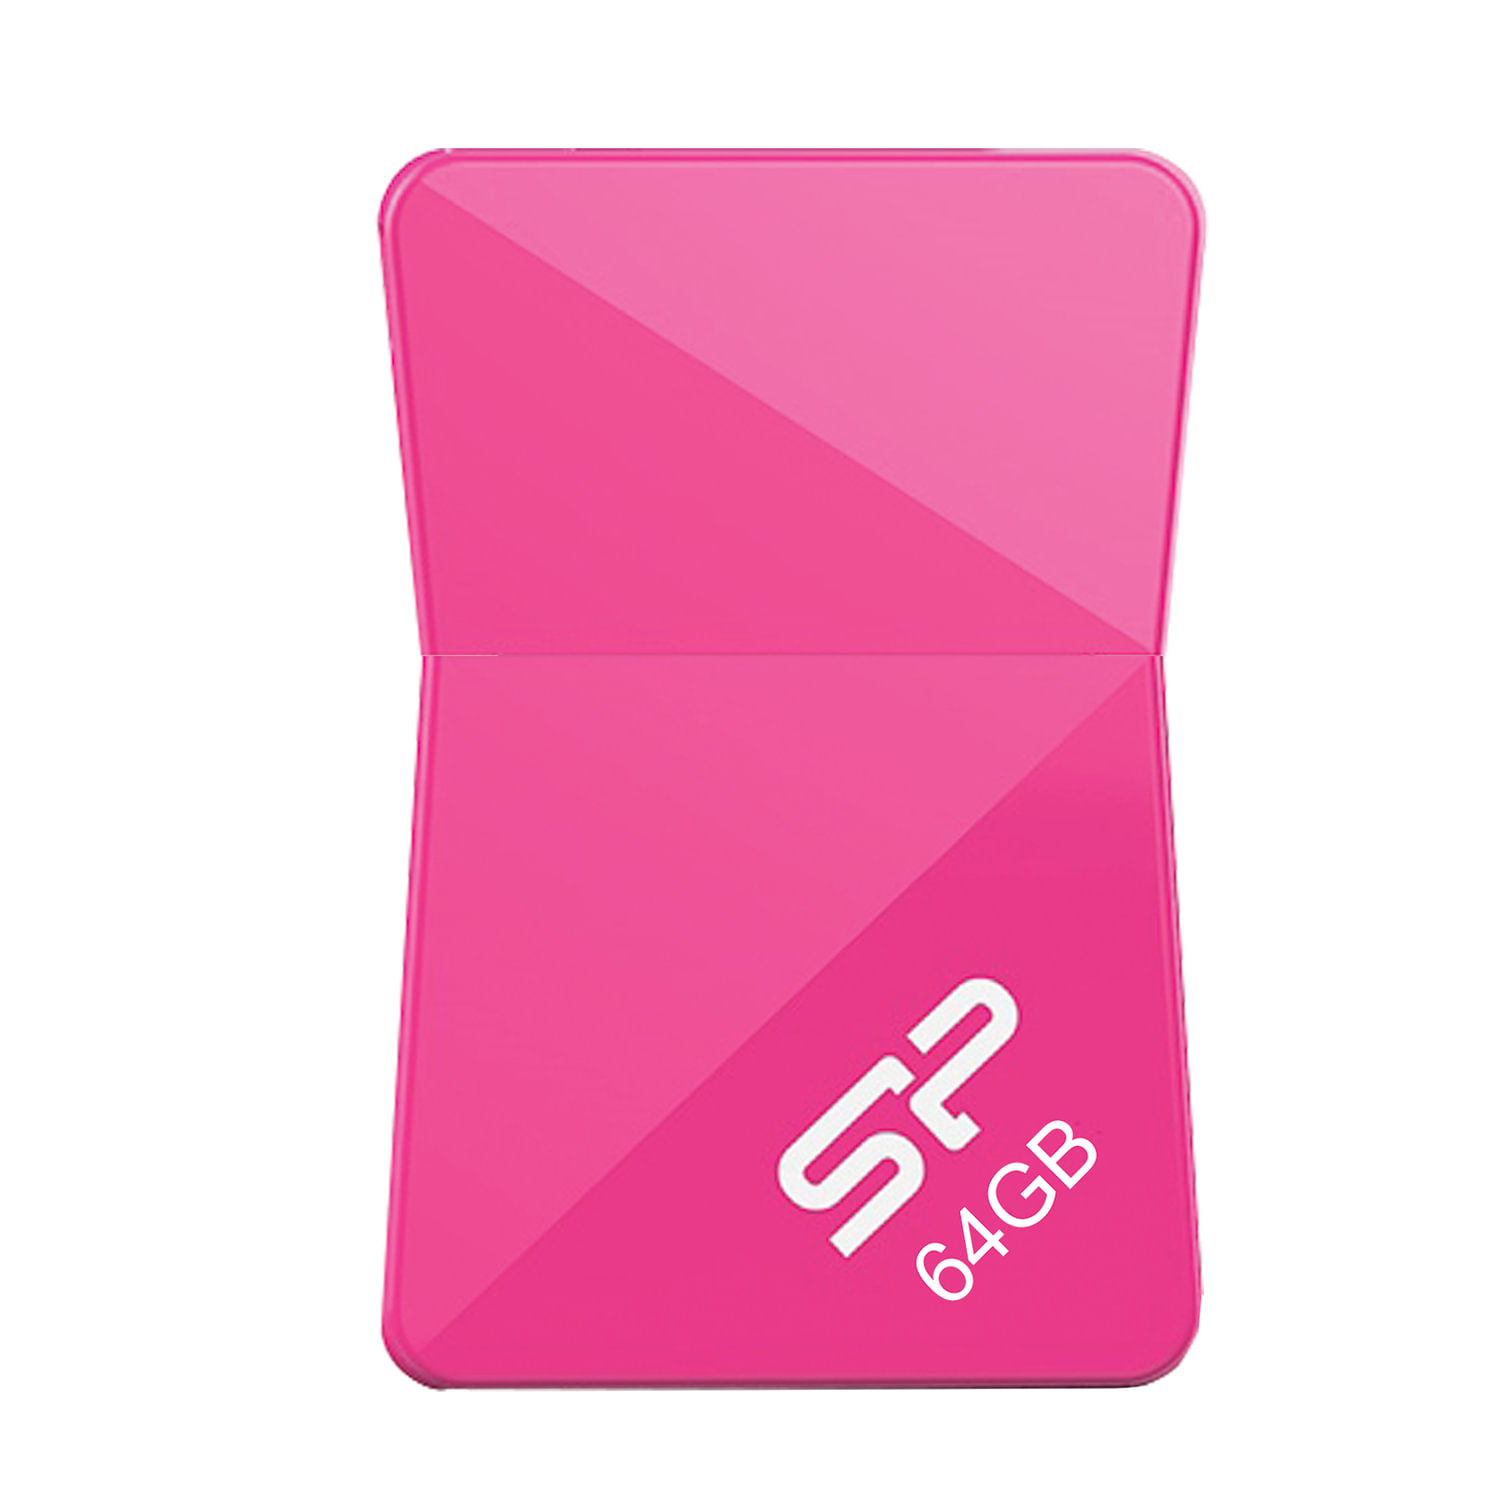 Флеш-диск 64 GB SILICON POWER Touch T08 USB 2.0, розовый, SP64GBUF2T08V1H